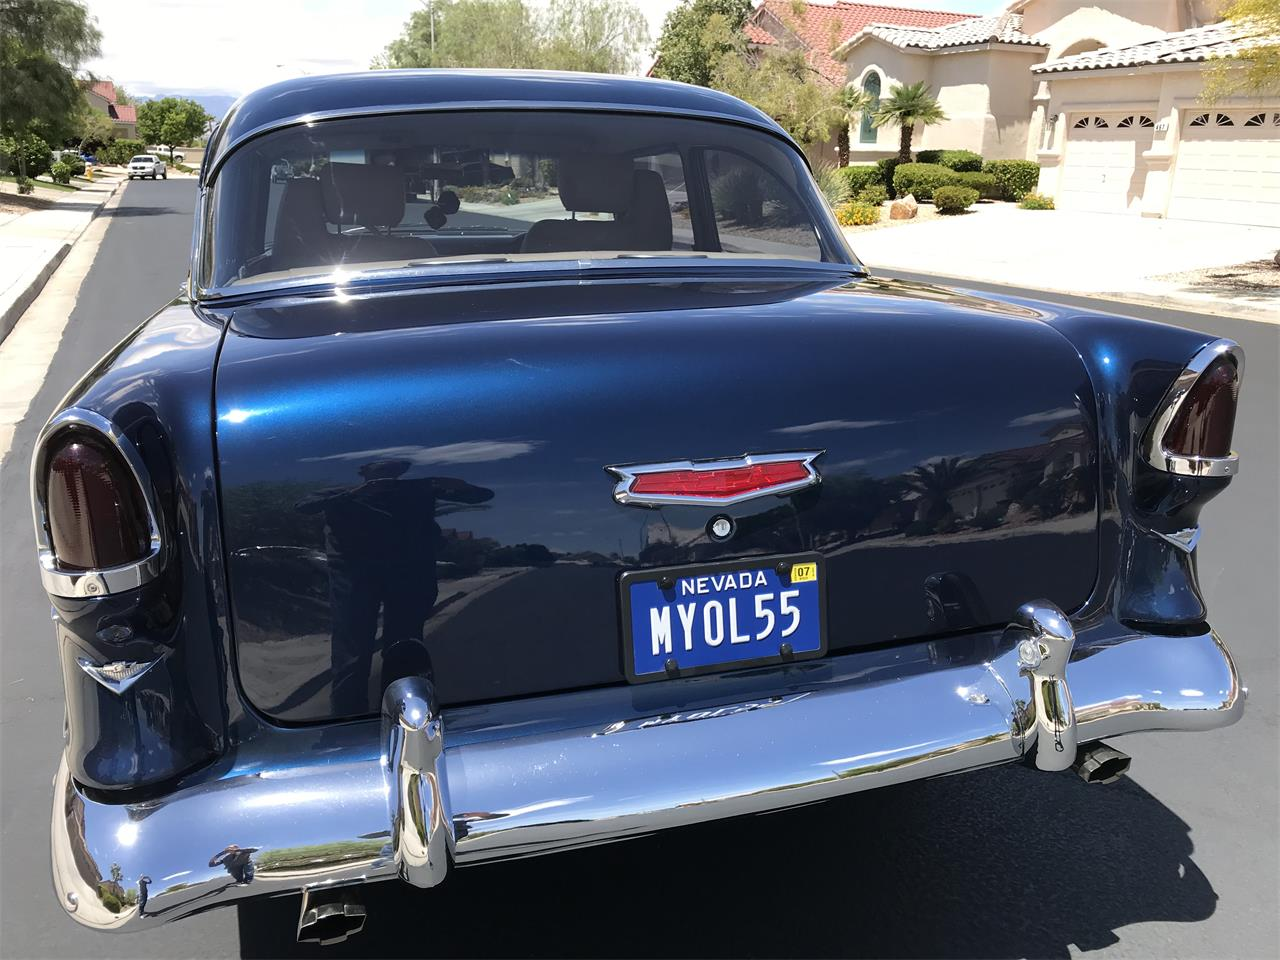 Large Picture of '55 Chevrolet Bel Air located in HENDERSON Nevada - $55,000.00 - Q2K1